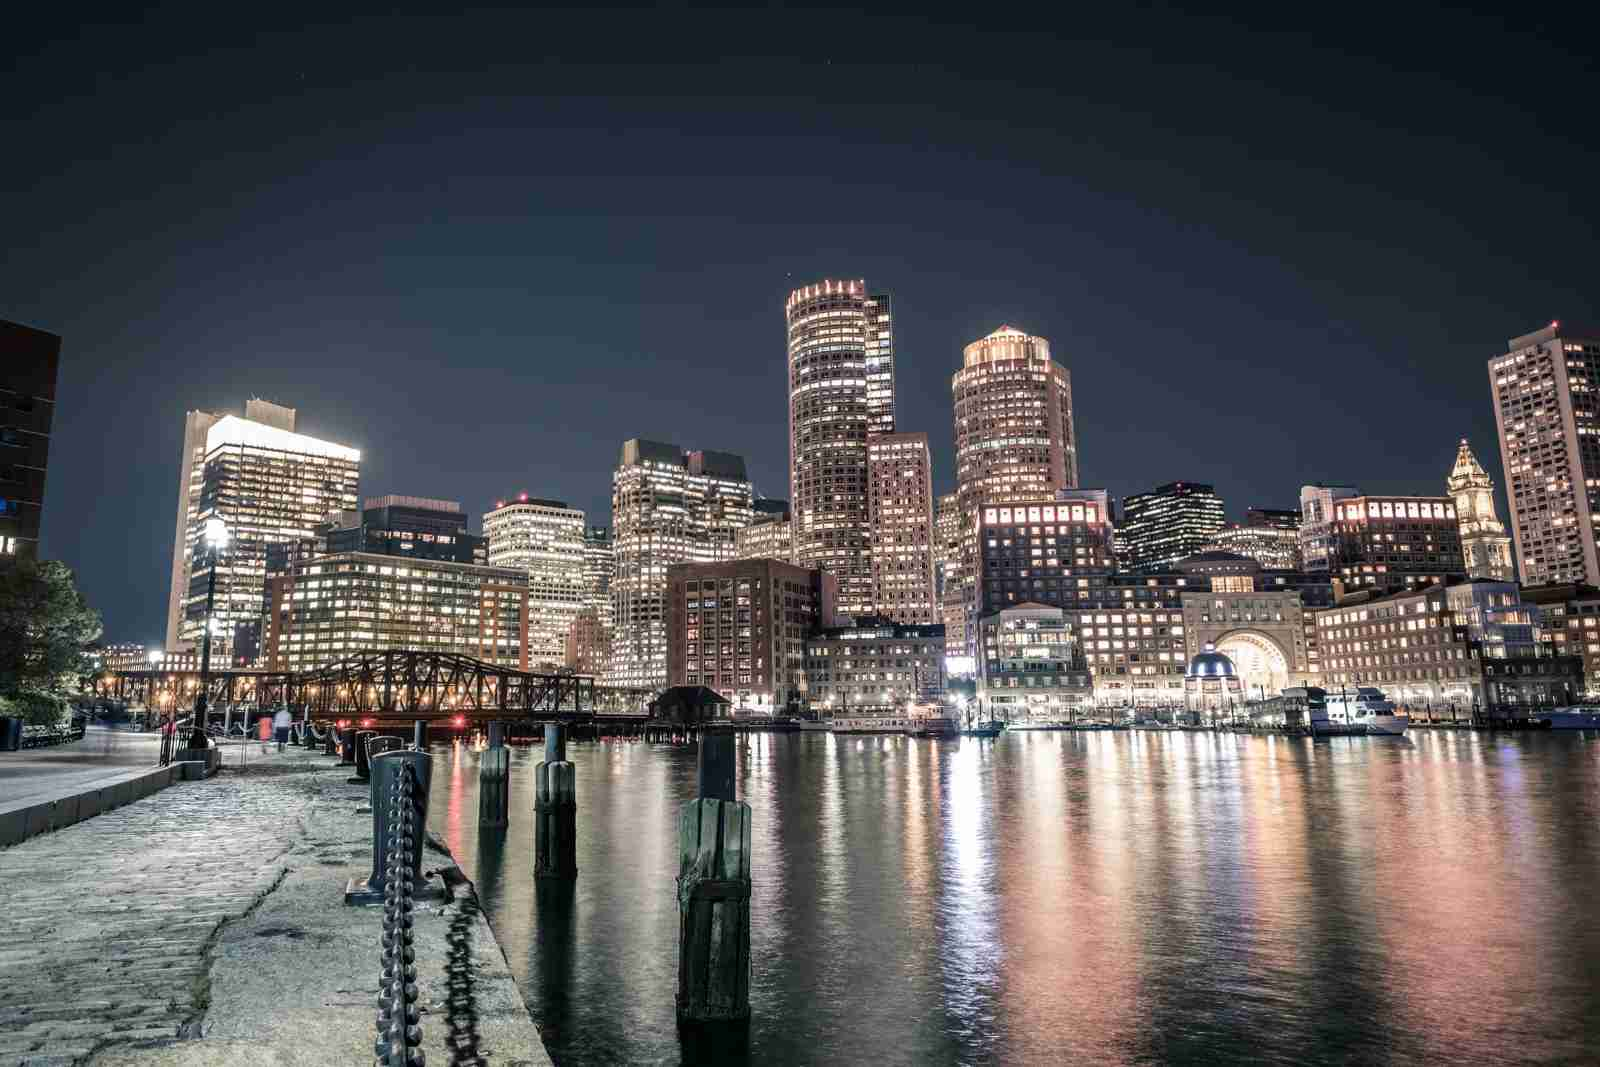 Boston Skyline. (Photo by lance anderson / Unsplash)